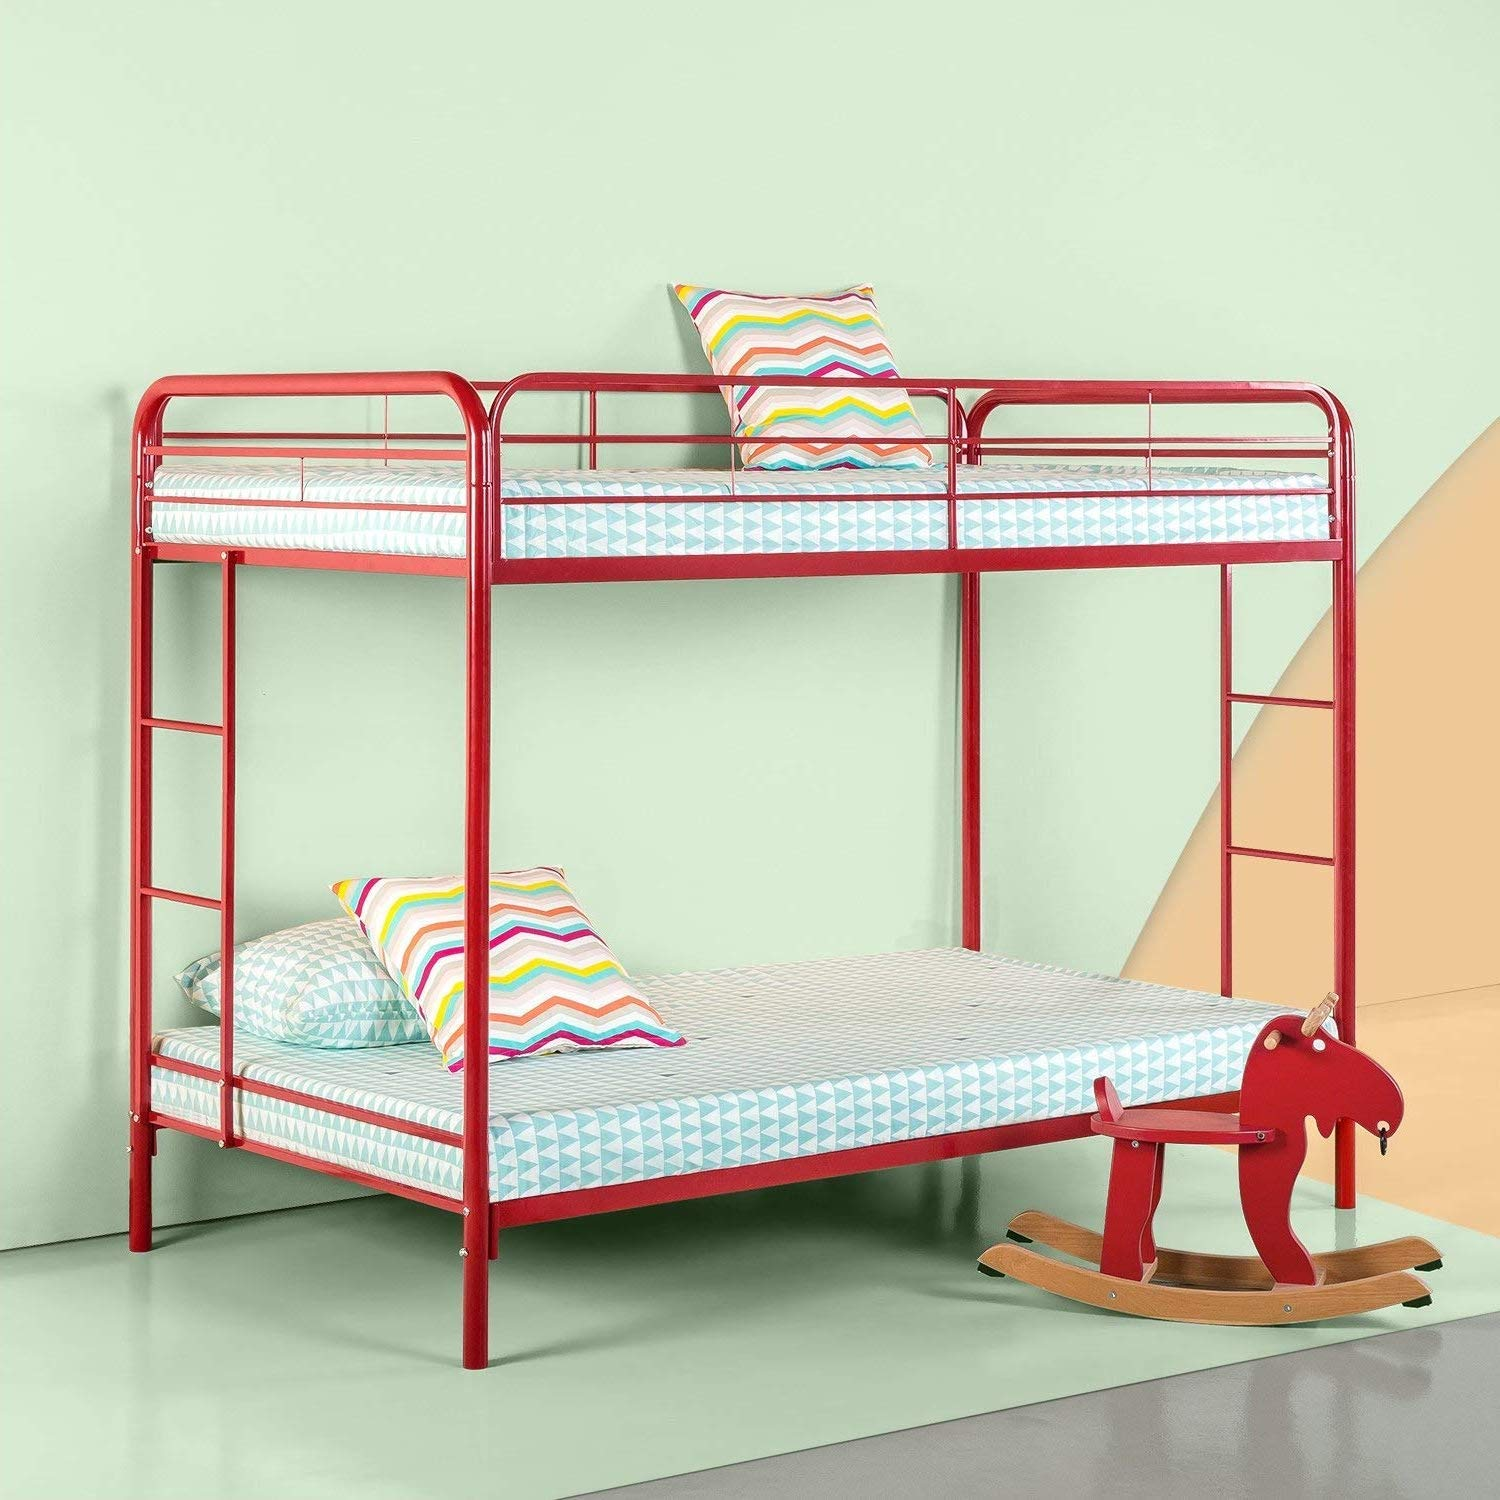 Bunk Beds for Kids Toddler Twin Over Full Steel Red Your Child Will Sleep in Style and Great Solution for Your Space Saving Needs by HomeTeks